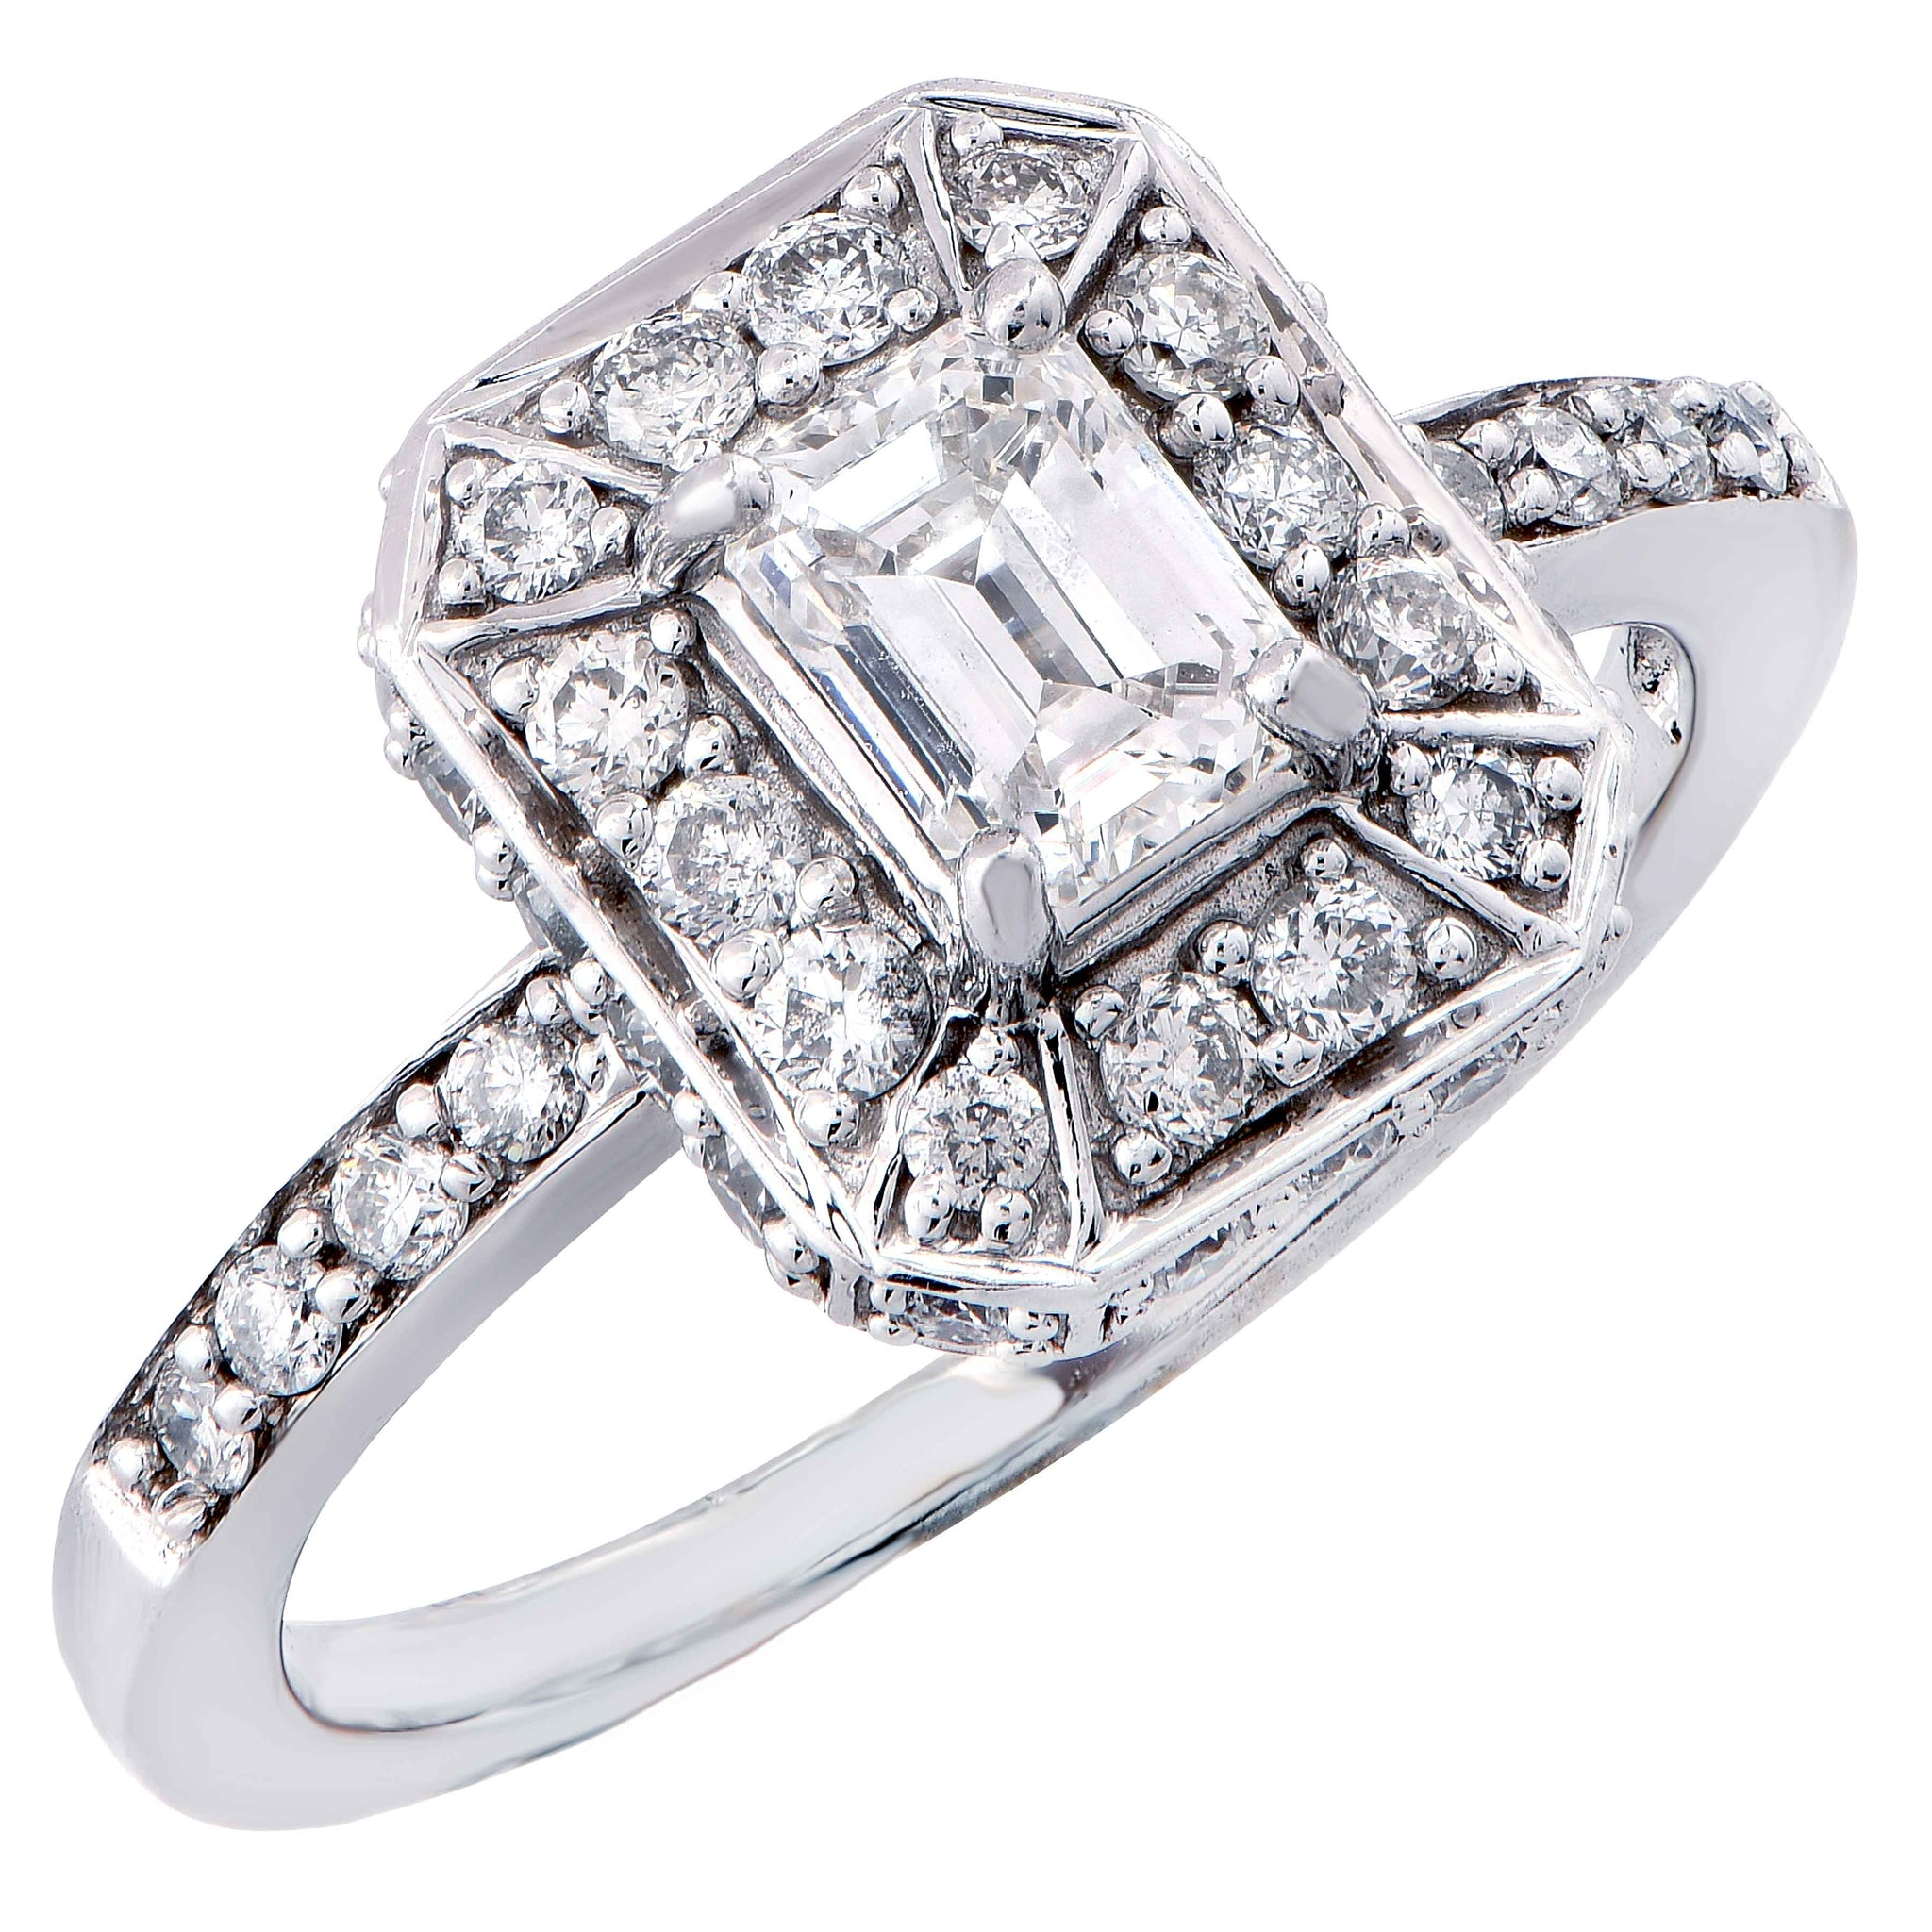 featuring ring emerald classic square cut stones emerlad wedding trilliant diamond with a collections side rings graff